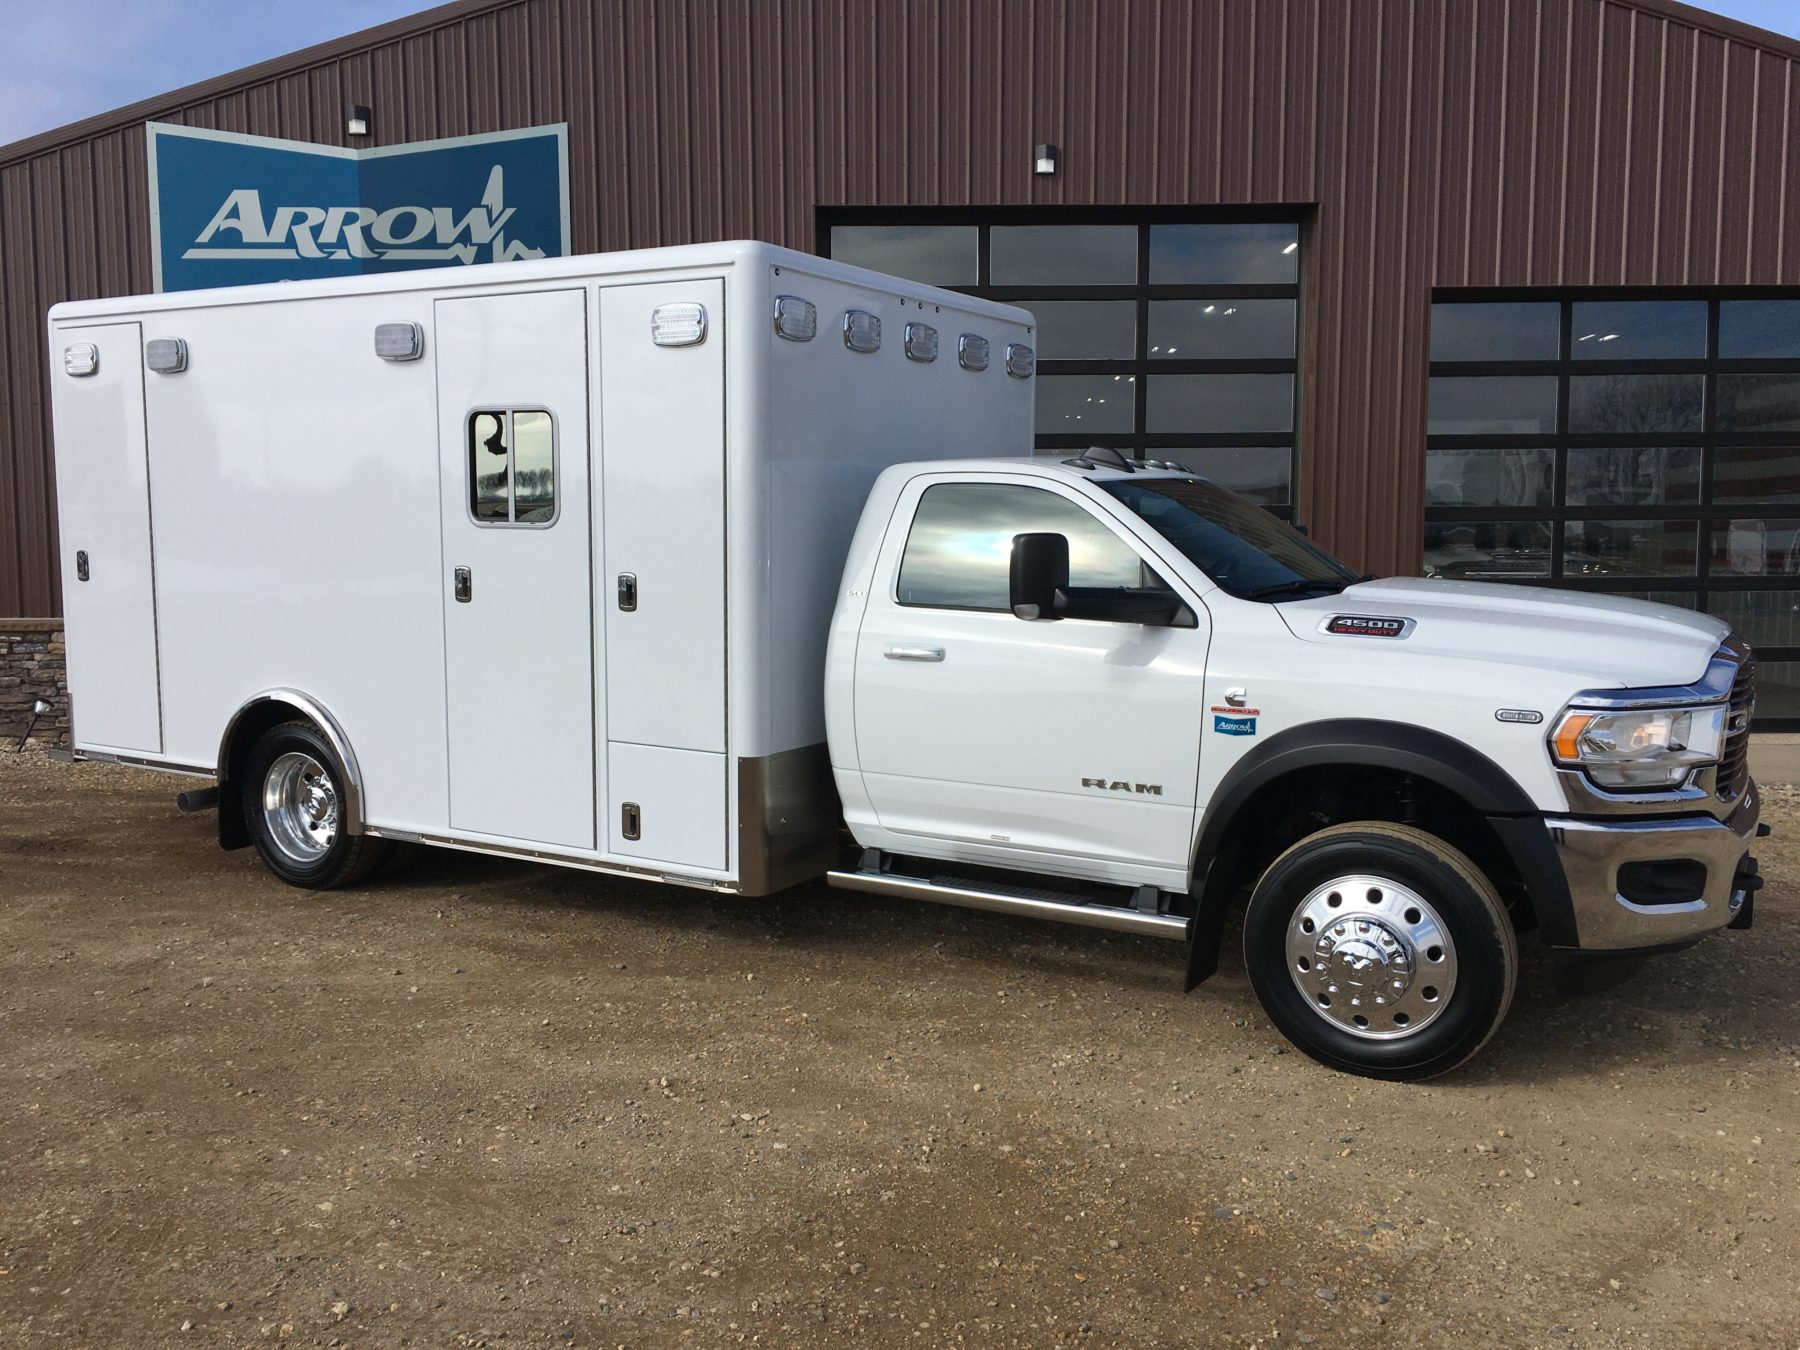 2019 Ram 4500 4x4 Heavy Duty Ambulance For Sale – Picture 4